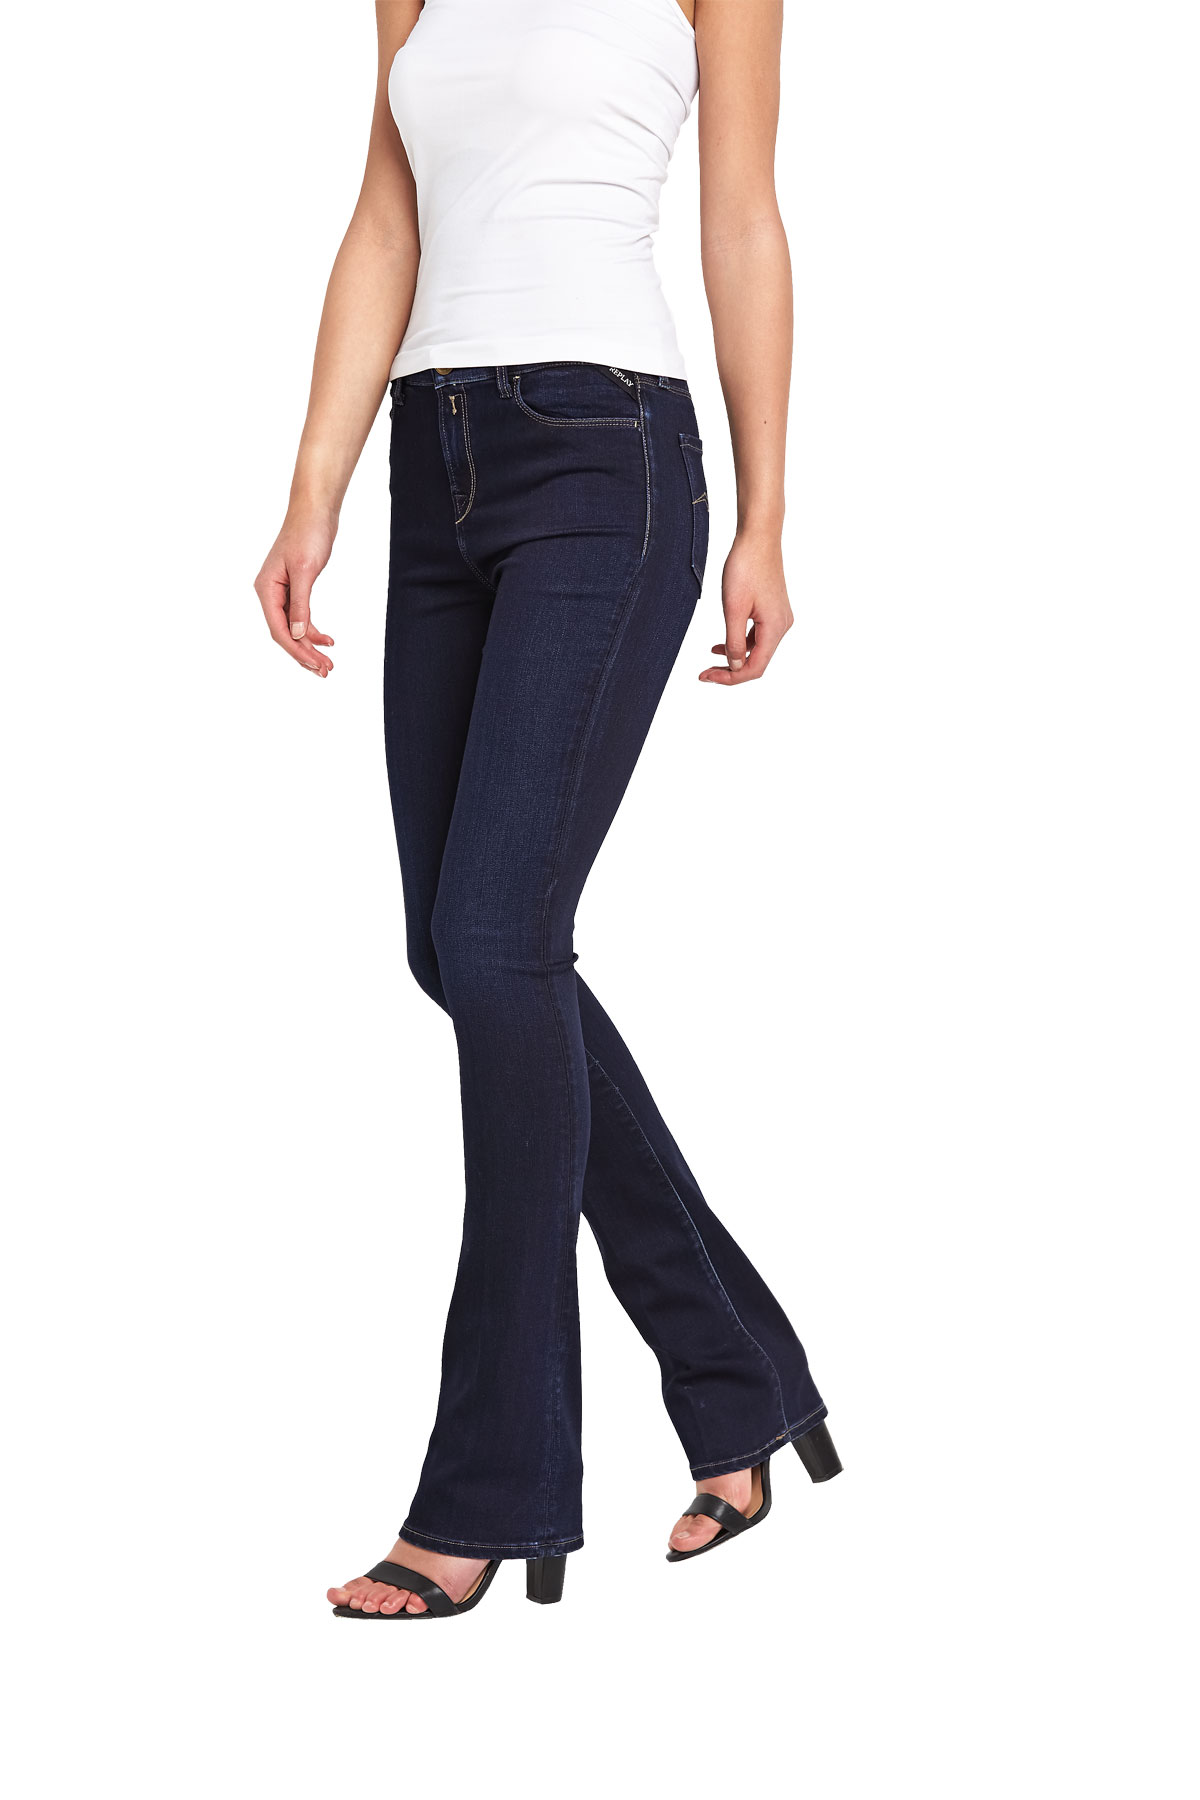 Replay Miwa High Rise Bootcut Jean